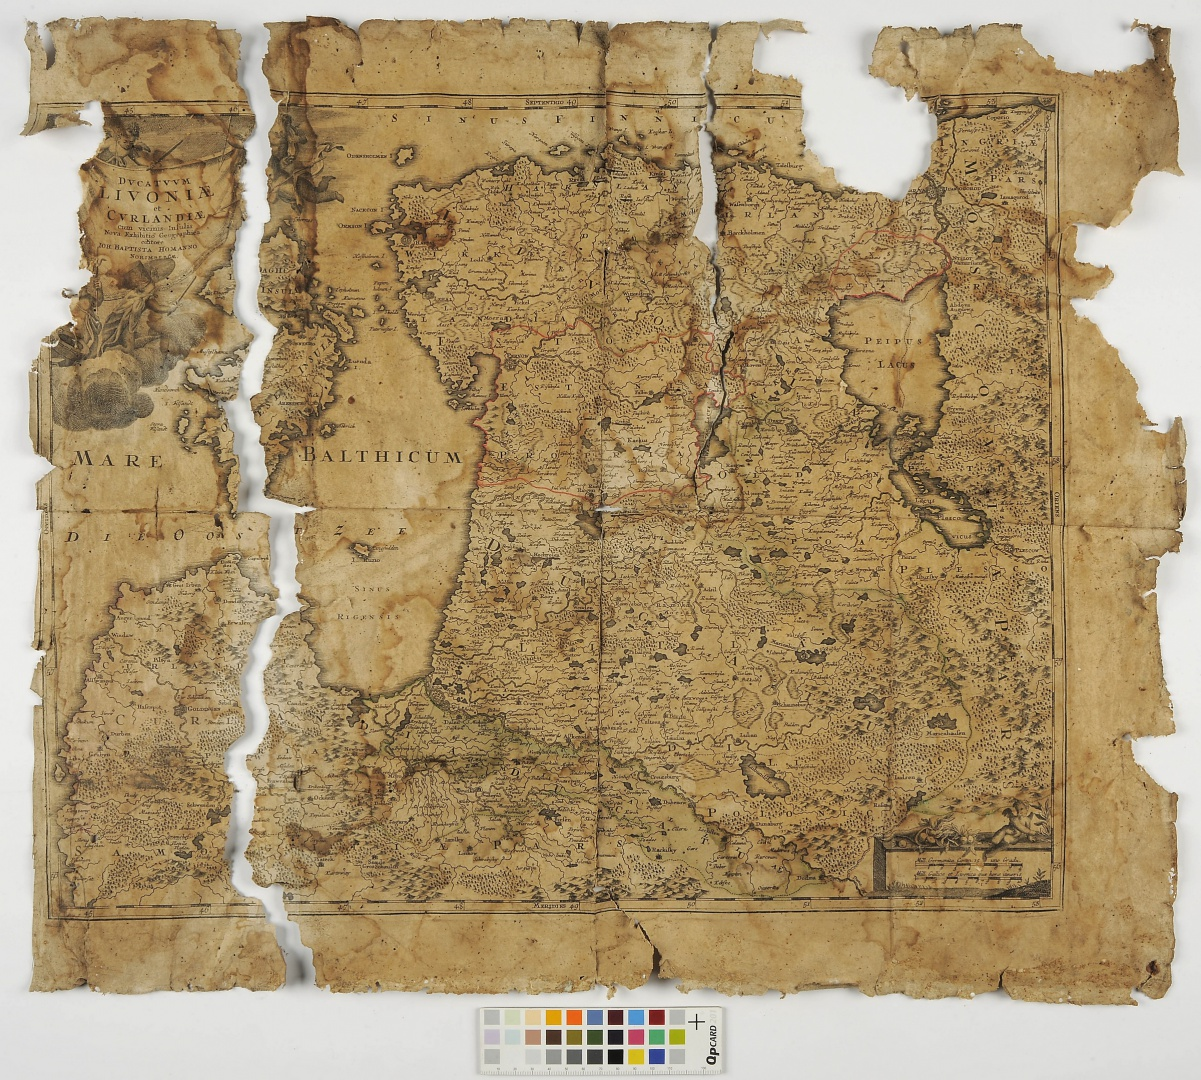 ill 4. Before conservation. A map of Old Livonia.